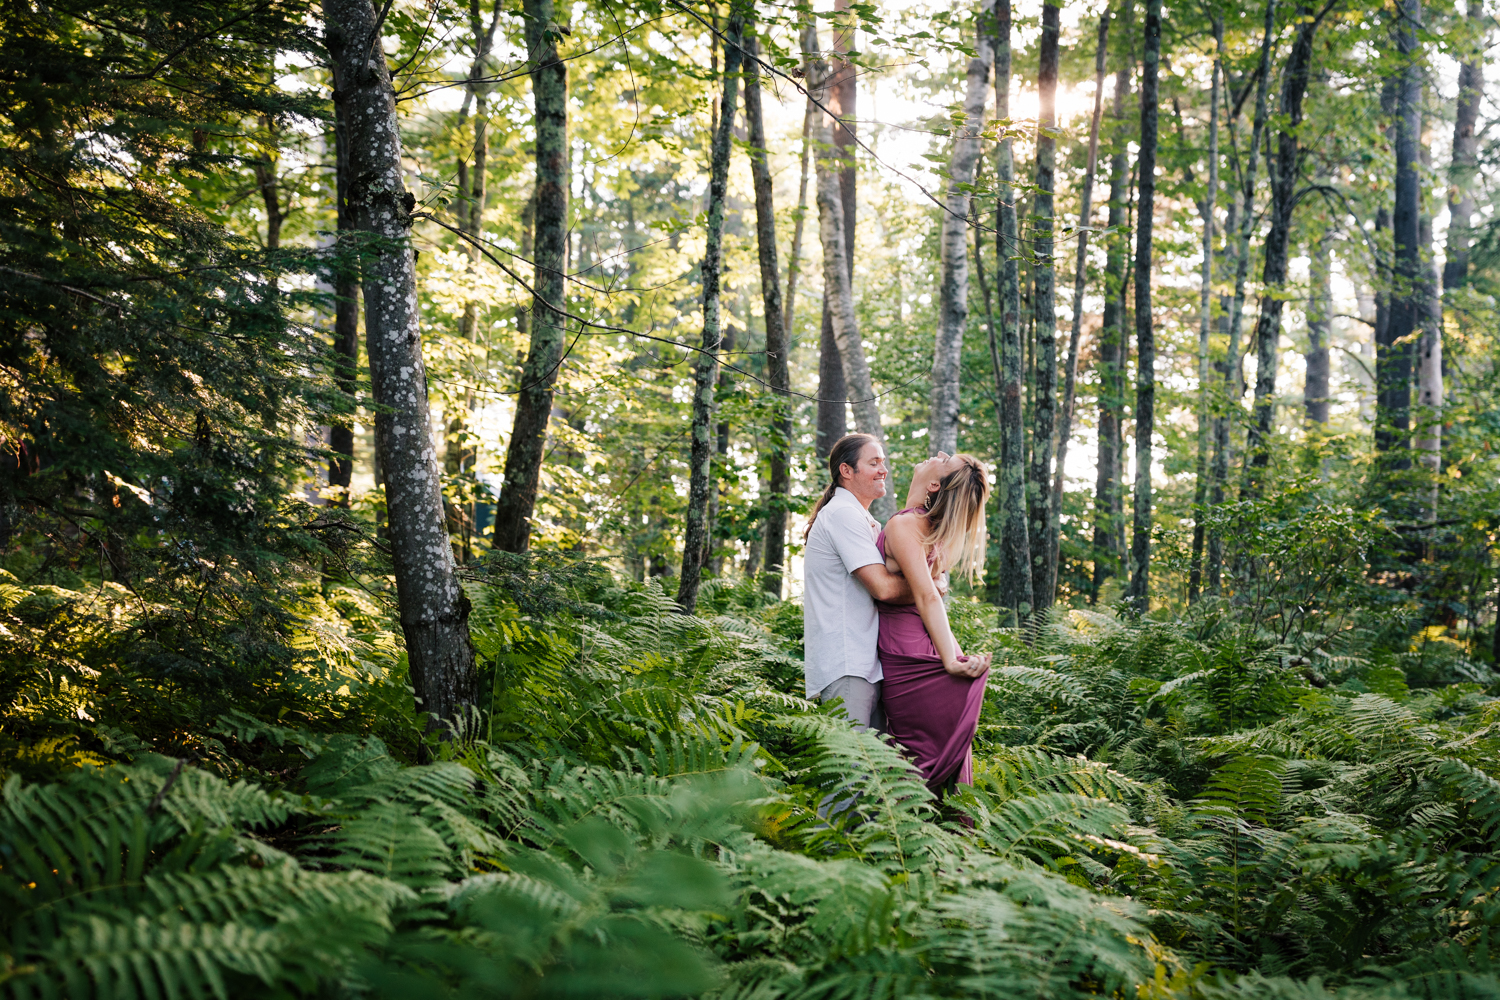 dublin-new-hampshire-adventure-engagement-andrea-van-orsouw-photography-fun-natural-woodsy-photographer.jpg